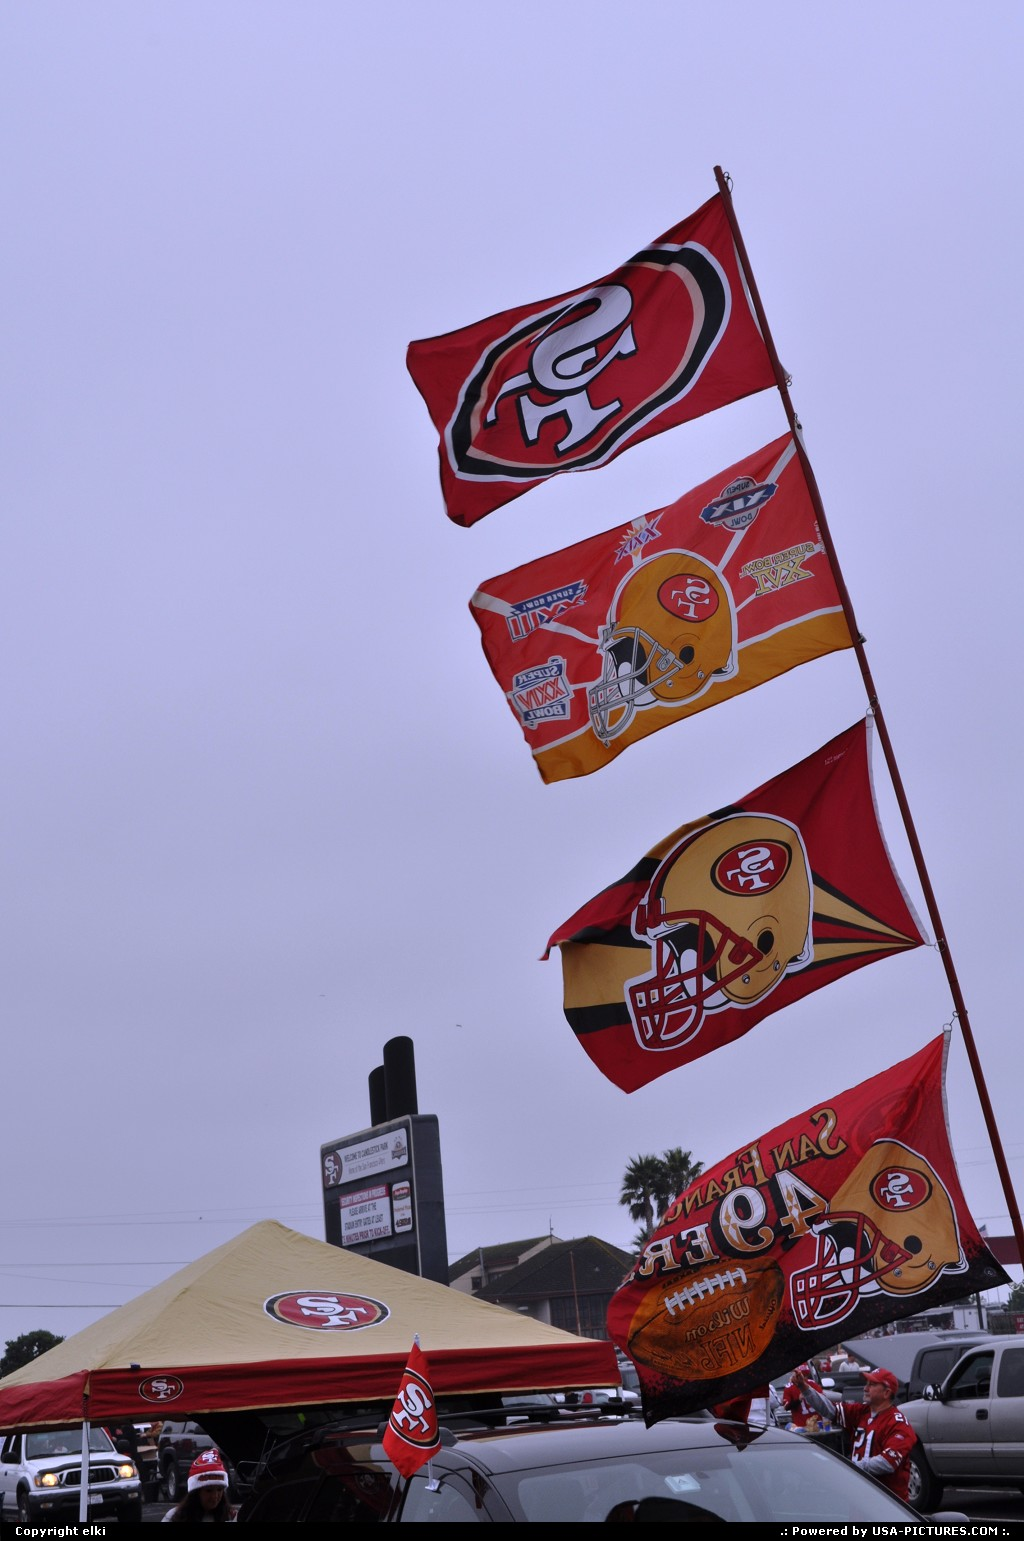 Picture by elki:San FranciscoCaliforniaSan Fancisco, 49 ers, play off